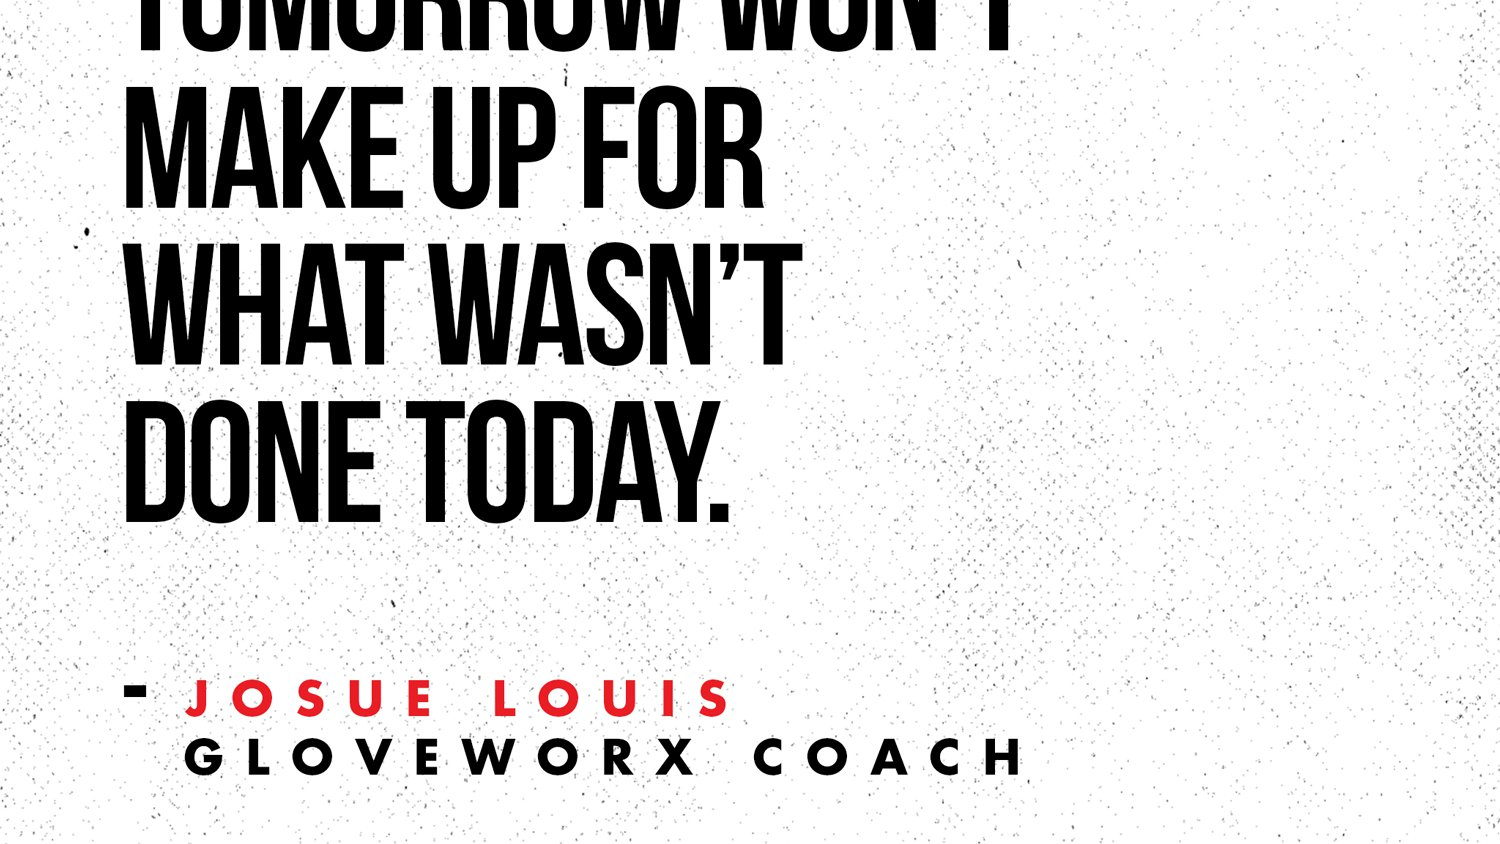 Quotes from Coaches to Keep You Motivated